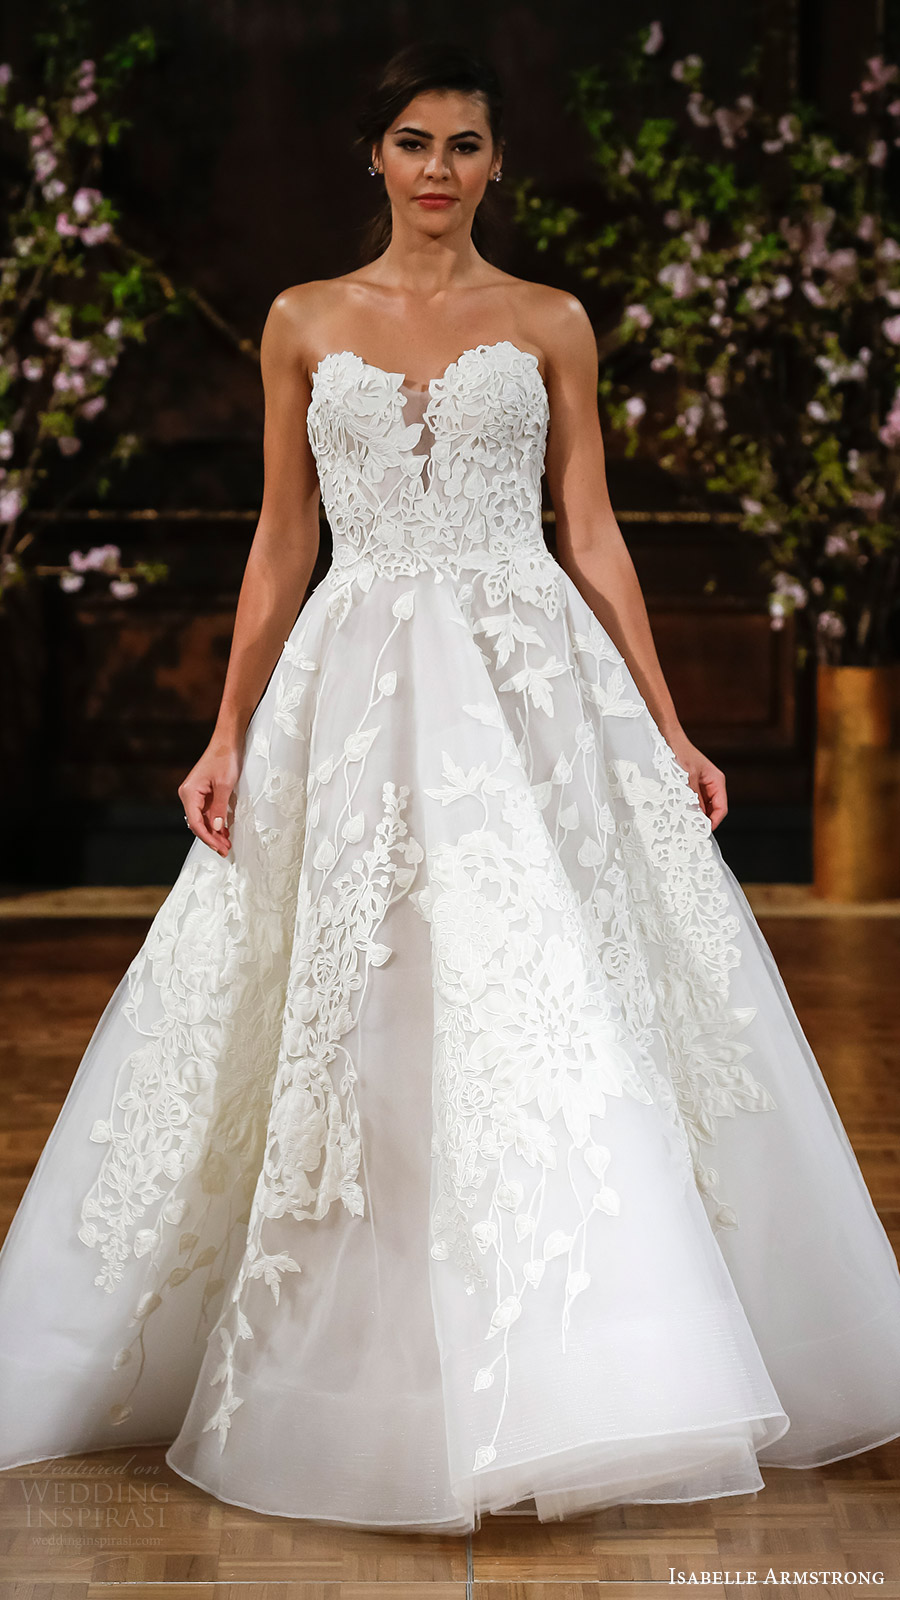 Wedding Dresses 2017 Ideas : Armstrong bridal spring strapless sweetheart aline wedding dress